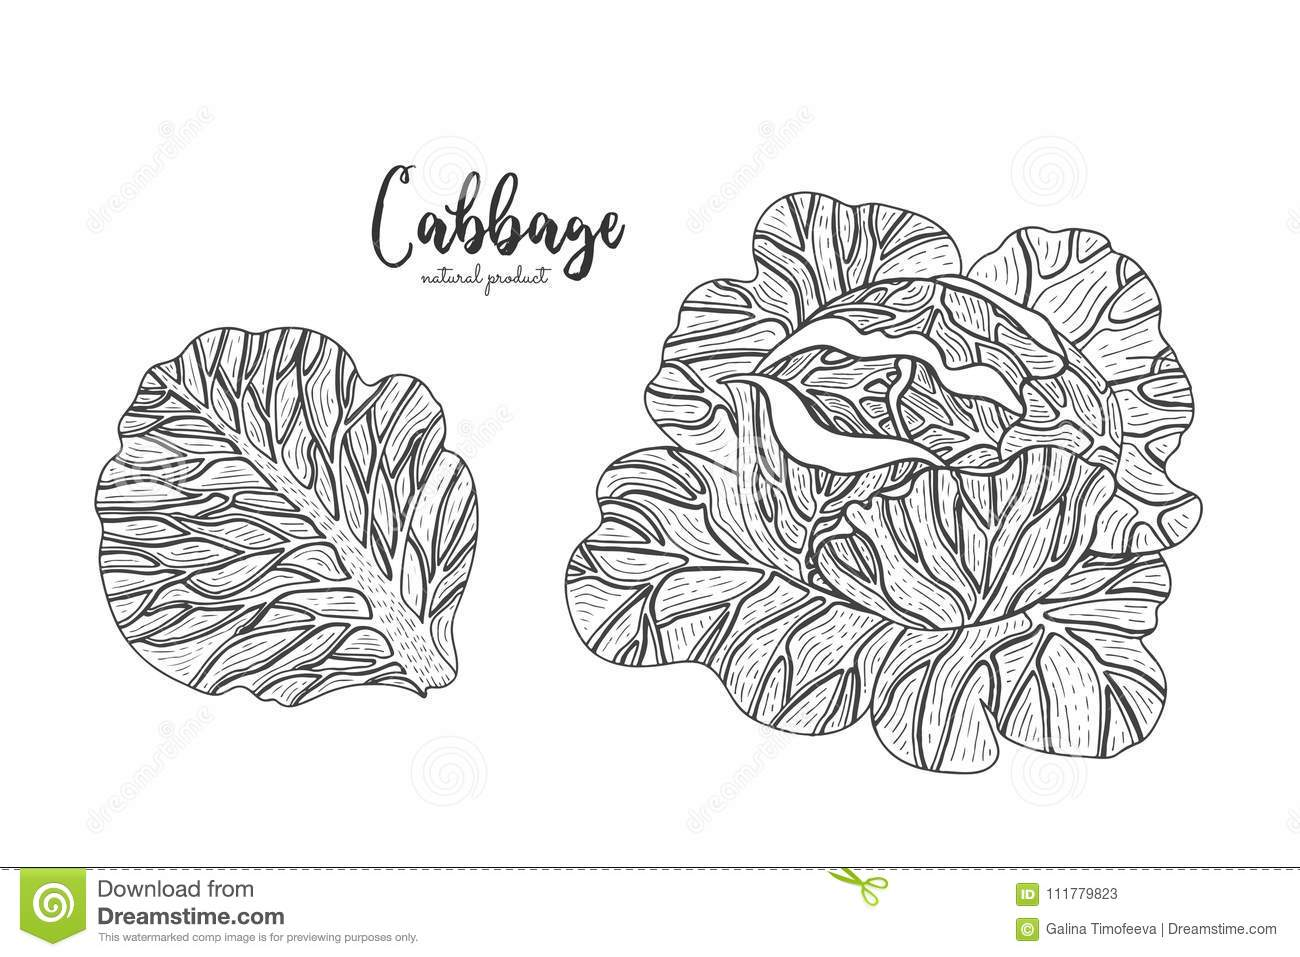 Cabbage hand drawn vector illustration. Isolated vegetable engraved style object. Detailed vegetarian food drawing. Farm